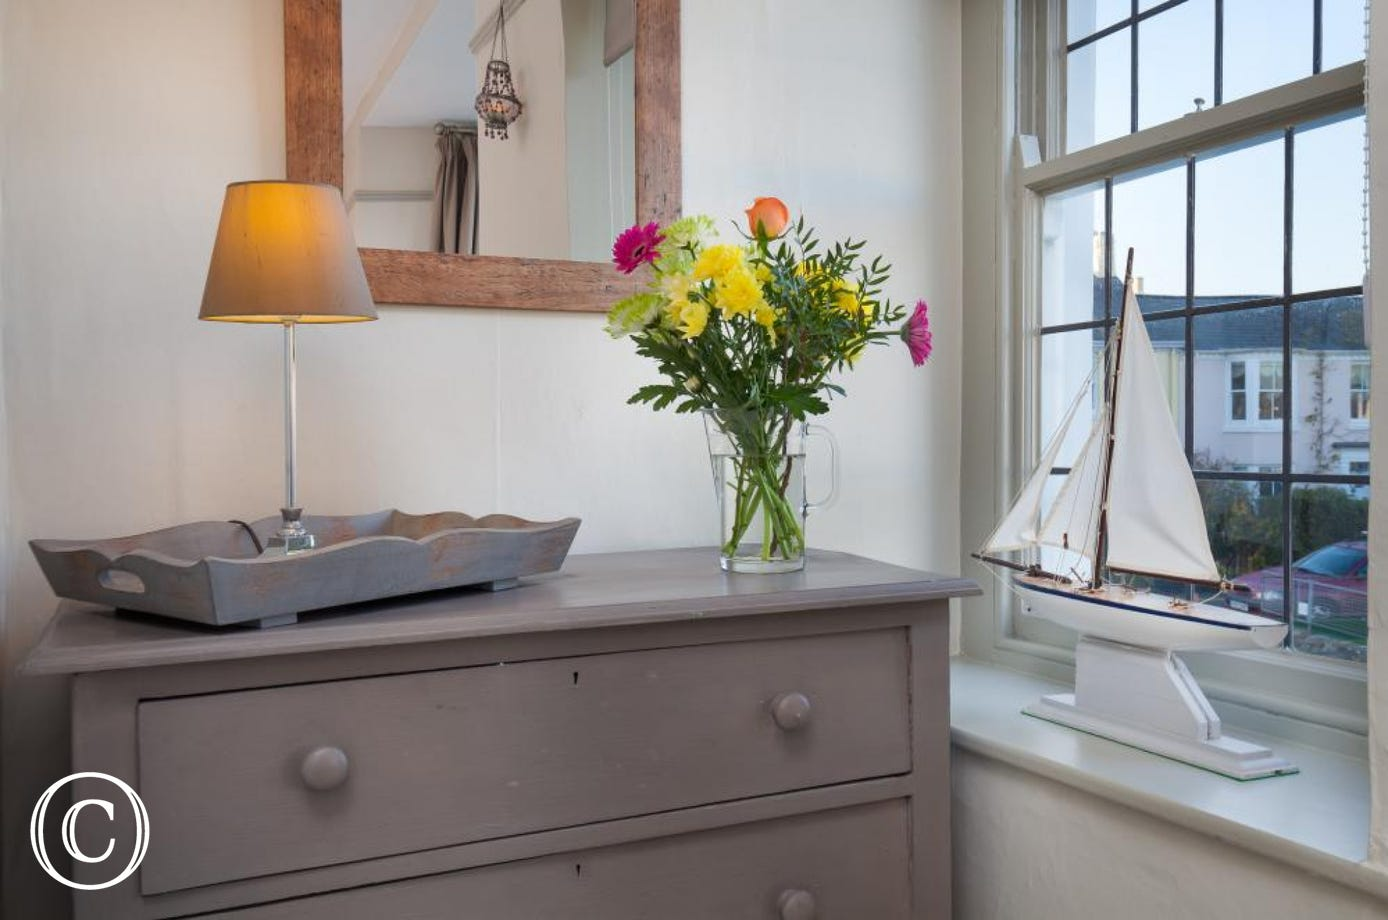 Accessories in the master bedroom - Compass Cottage, Shaldon